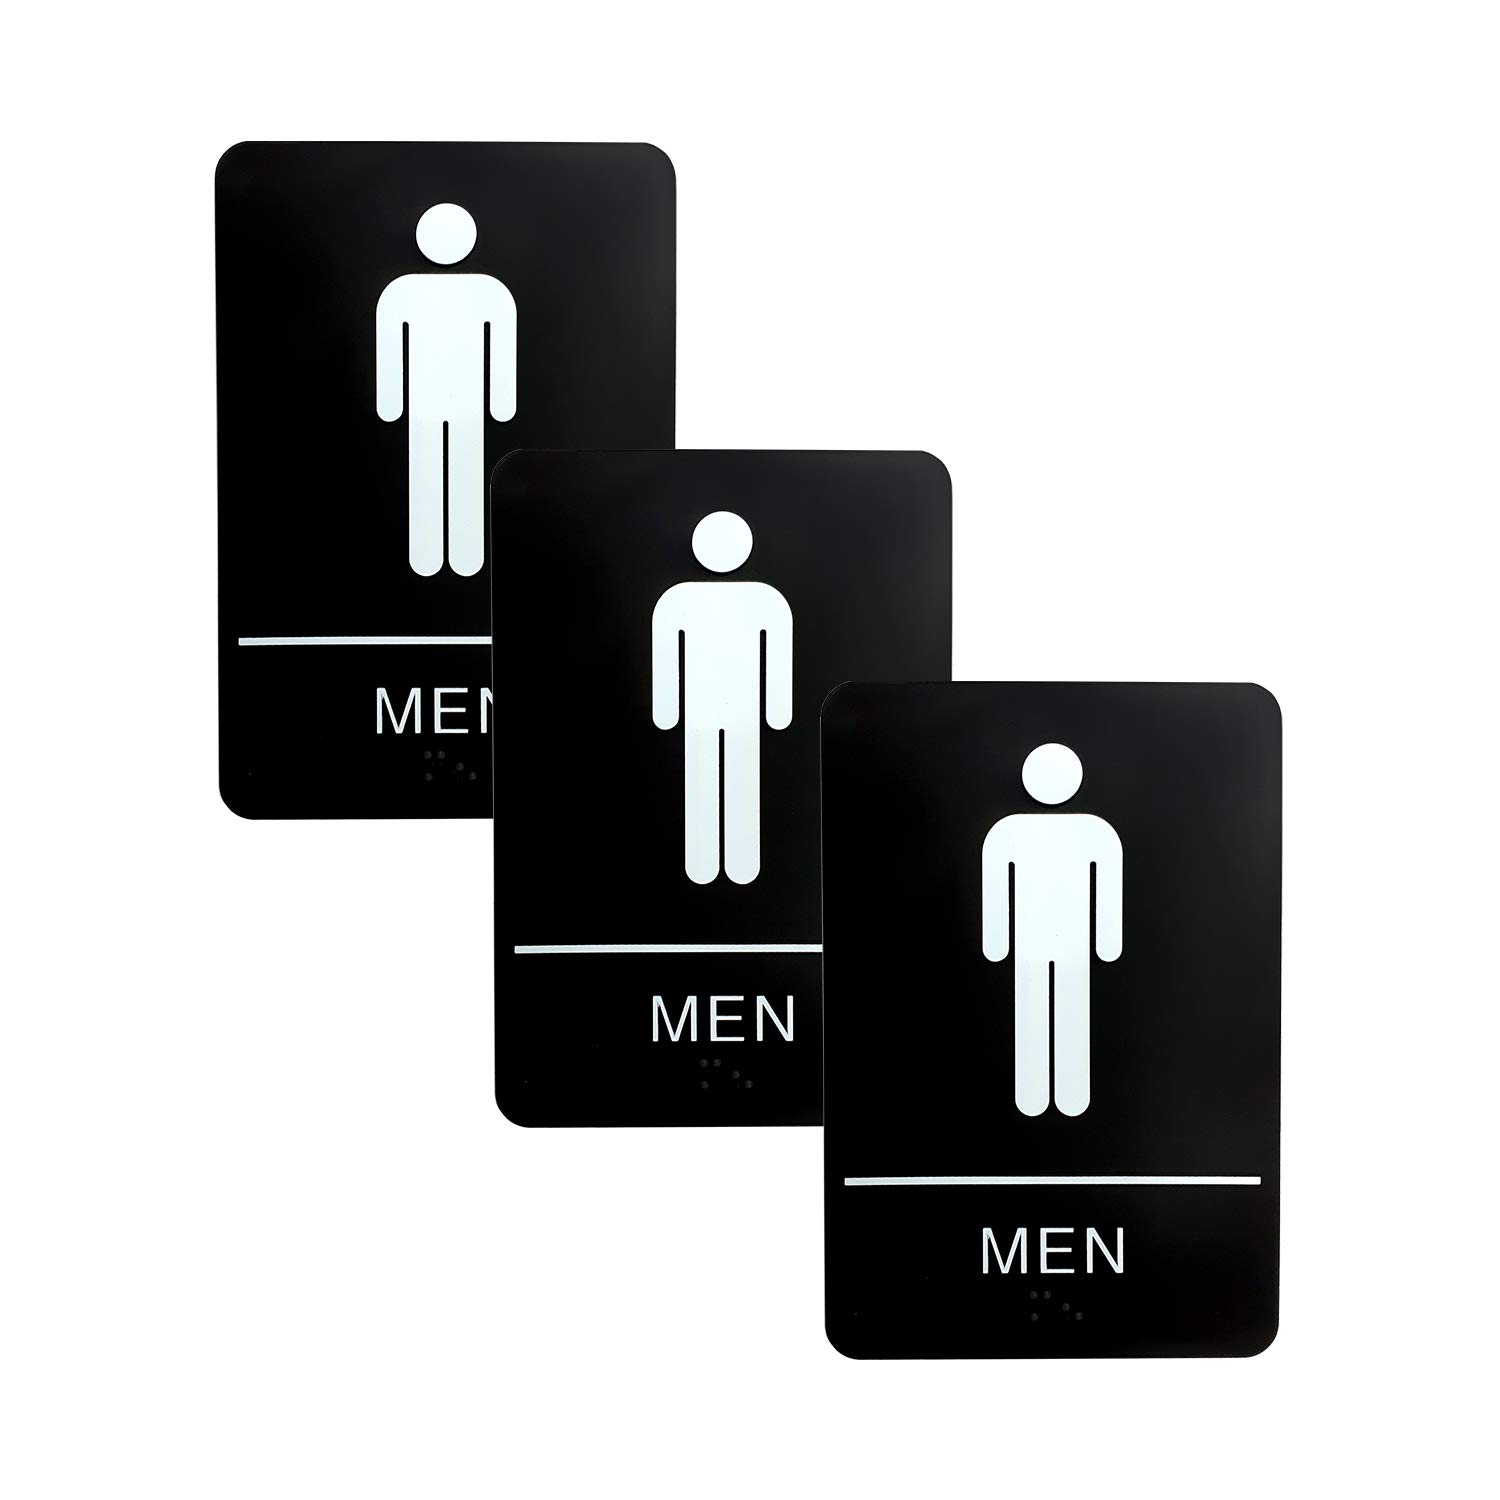 2 Pack, Unisex Unisex Men And Women Bathroom And Restroom Signs ADA Approved Public And Private Indoor Outdoor Areas With Raised Tactile Braille Writing System